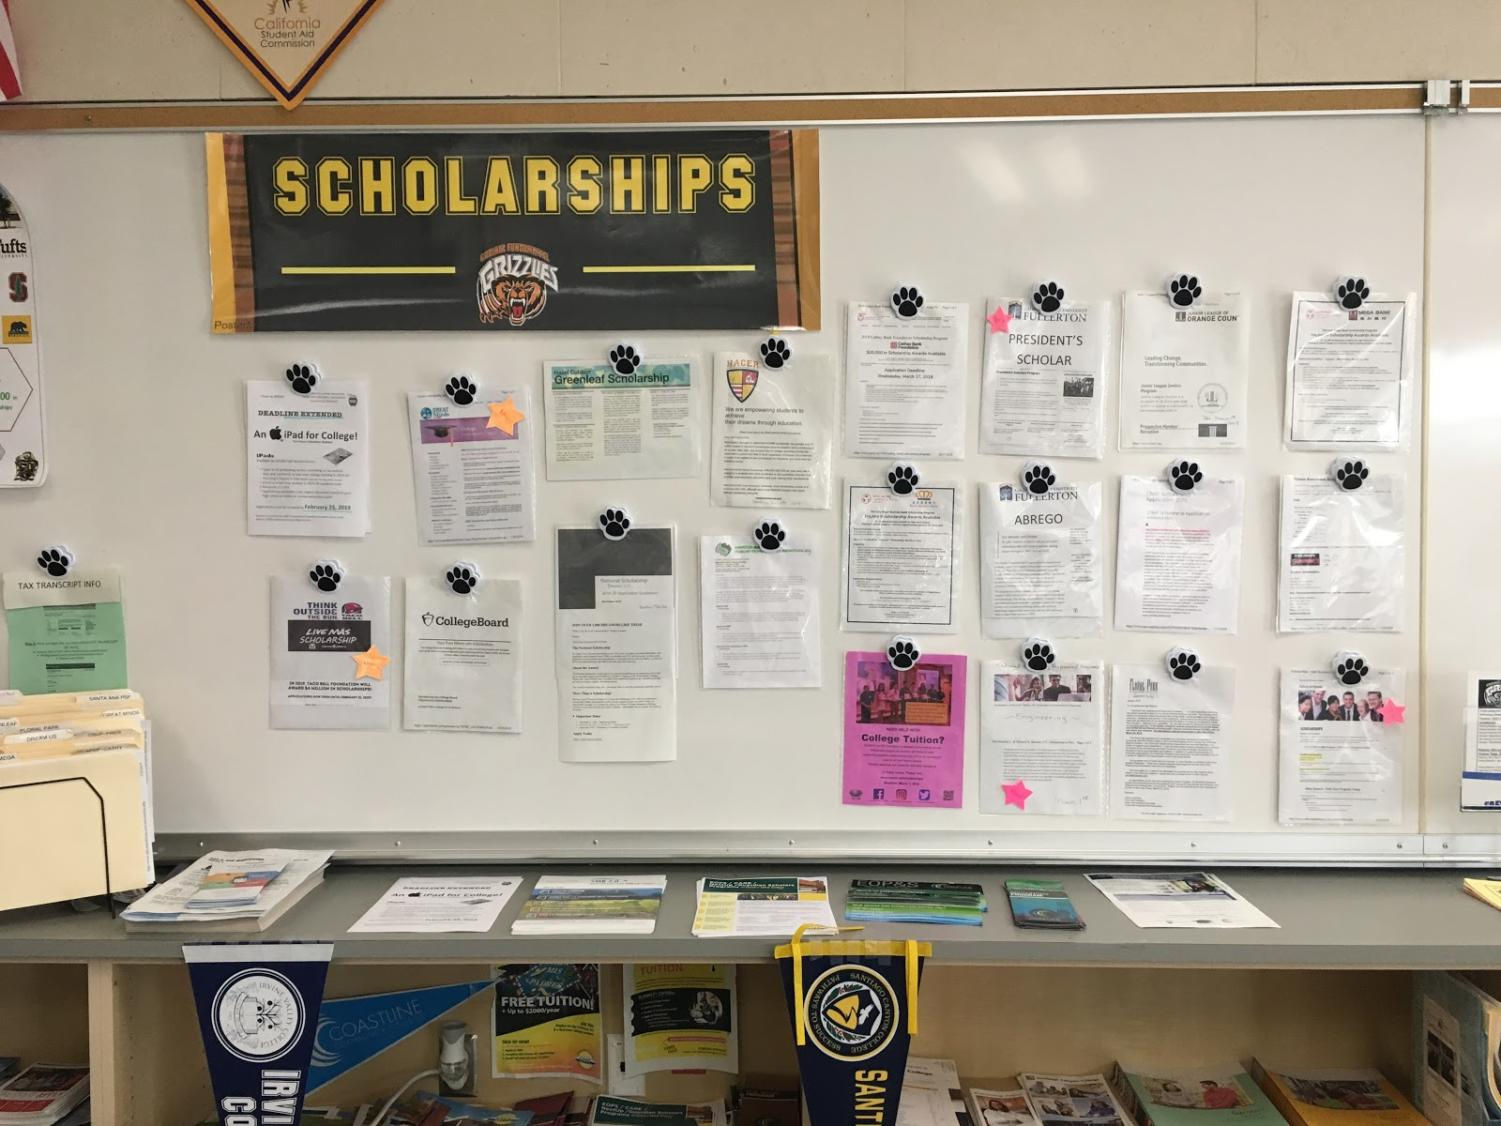 Various scholarship opportunities available to students located on the wall in the Higher Ed. Center in the Counseling Center at Godinez Fundamental High School.